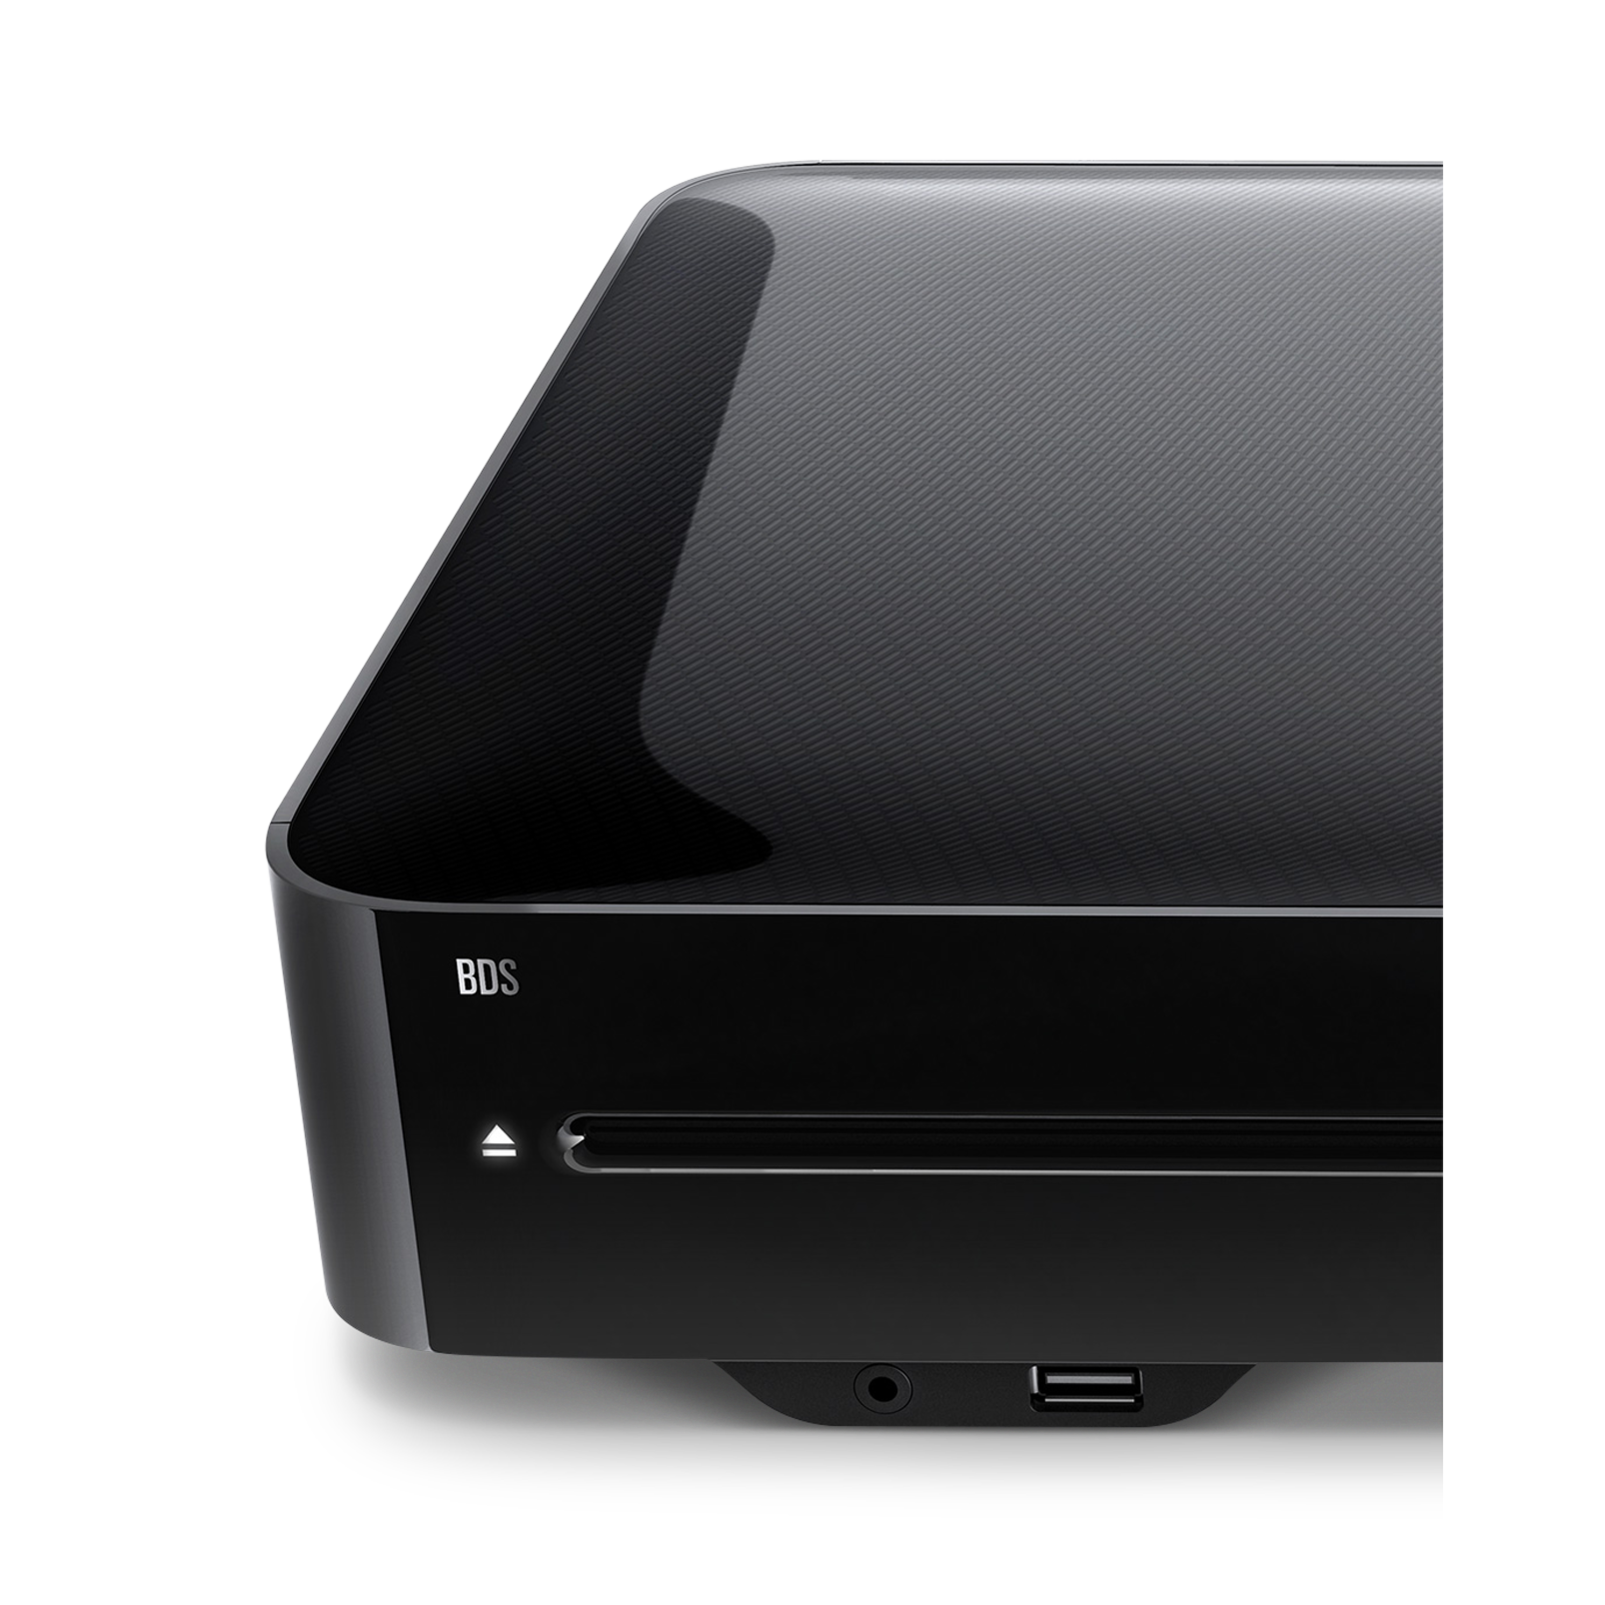 BDS 580S - Black - 5.1-channel, 325-watt, 4K upscaling Blu-ray Disc™ Receiver with Spotify Connect, AirPlay and Bluetooth® technology. - Detailshot 2